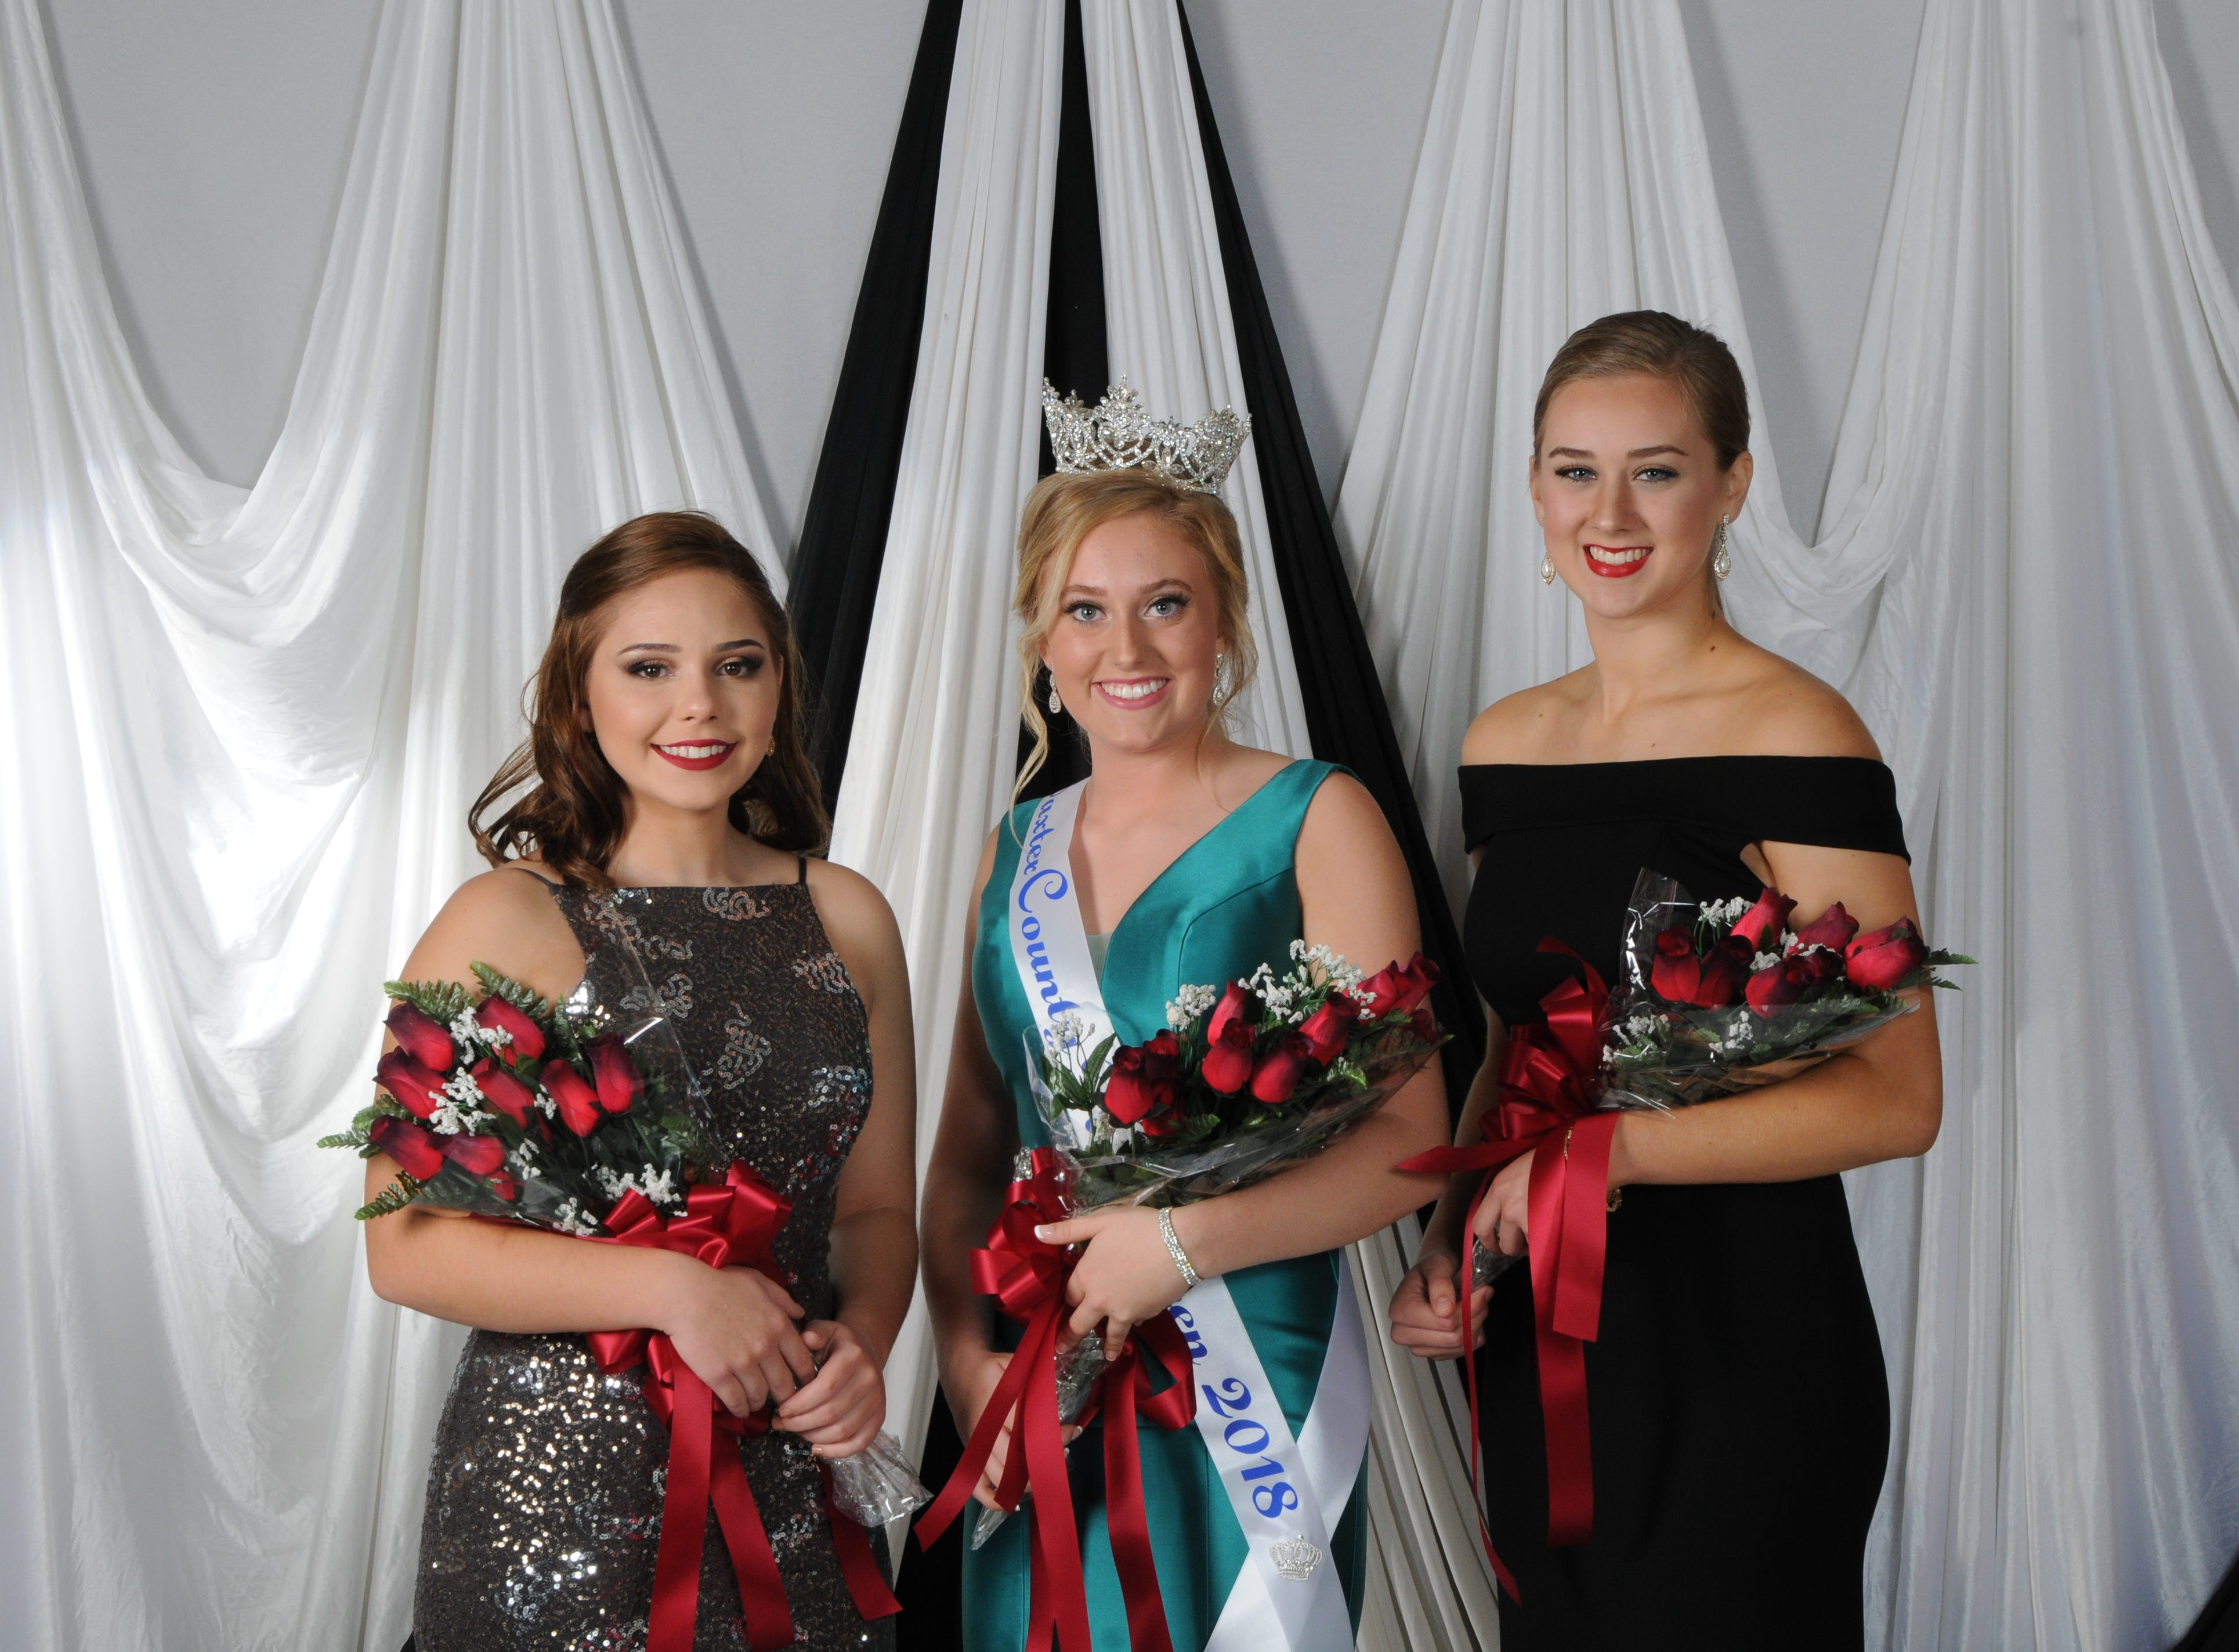 Logann Merriman (center), daughter of Chad and Julie Merriman of Mountain Home, was named Baxter County Fair Queen at the annual Baxter County Fair Pageant on Saturday at Dunbar Auditorium. Mackenize Drewry (right), daughter of David and Jennifer Drewry of Mountain Home, was named first alternate; Sydney Lawhorn (left), daughter of Tommy and Leslie Lawhorn of Mountain Home, was named second alternate; and Kasady Sutterfield (not pictured), daughter of Clayton and Andria Moore of Mountain Home, was named the People's Choice winner.